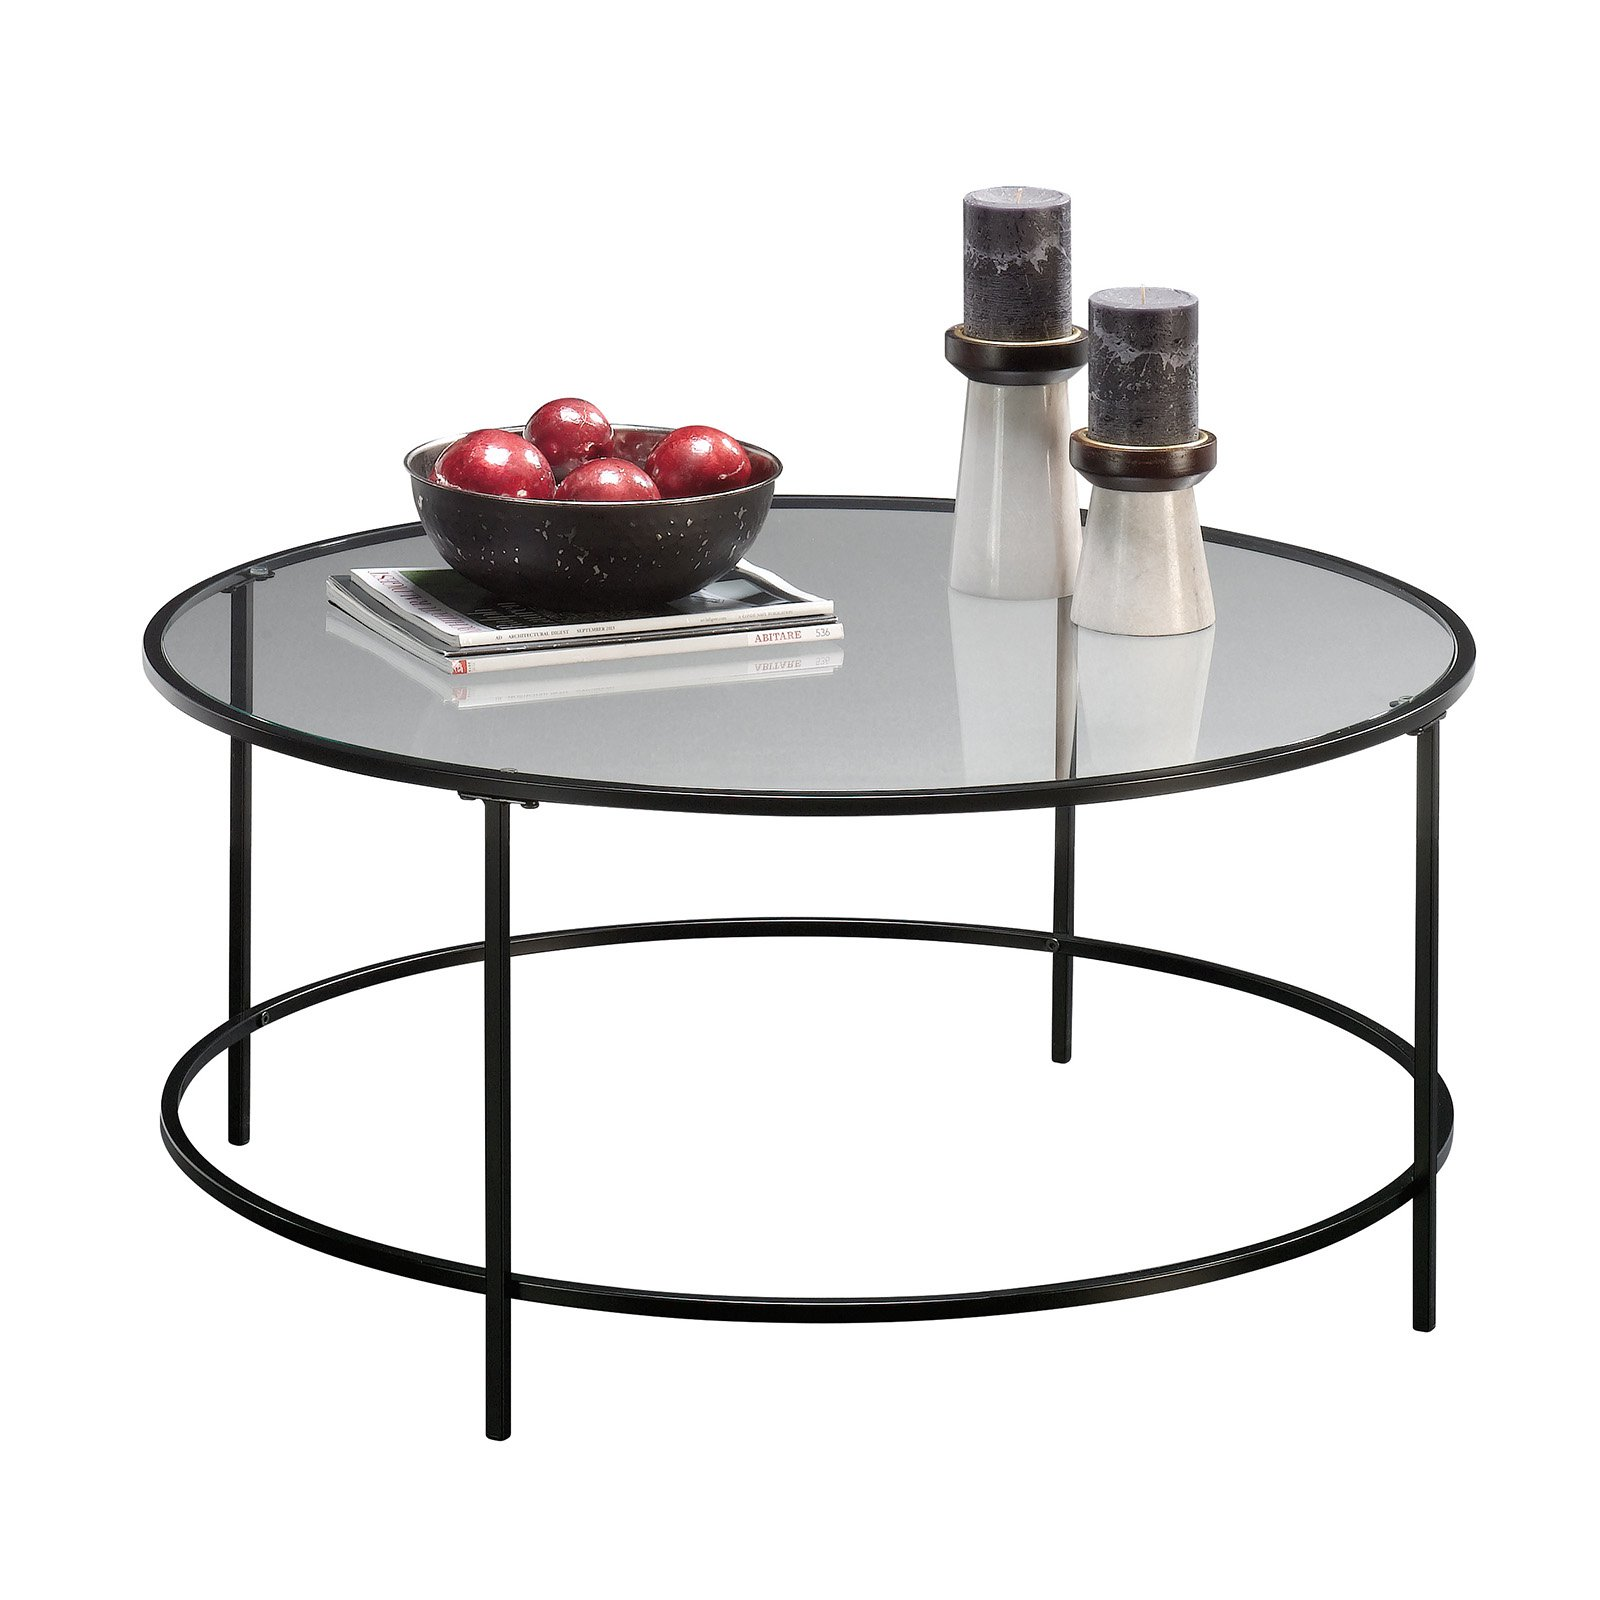 Better Homes Gardens Nola Coffee Table Round Glass Coffee Table Coffee Table Modern Glass Coffee Table [ 1600 x 1600 Pixel ]